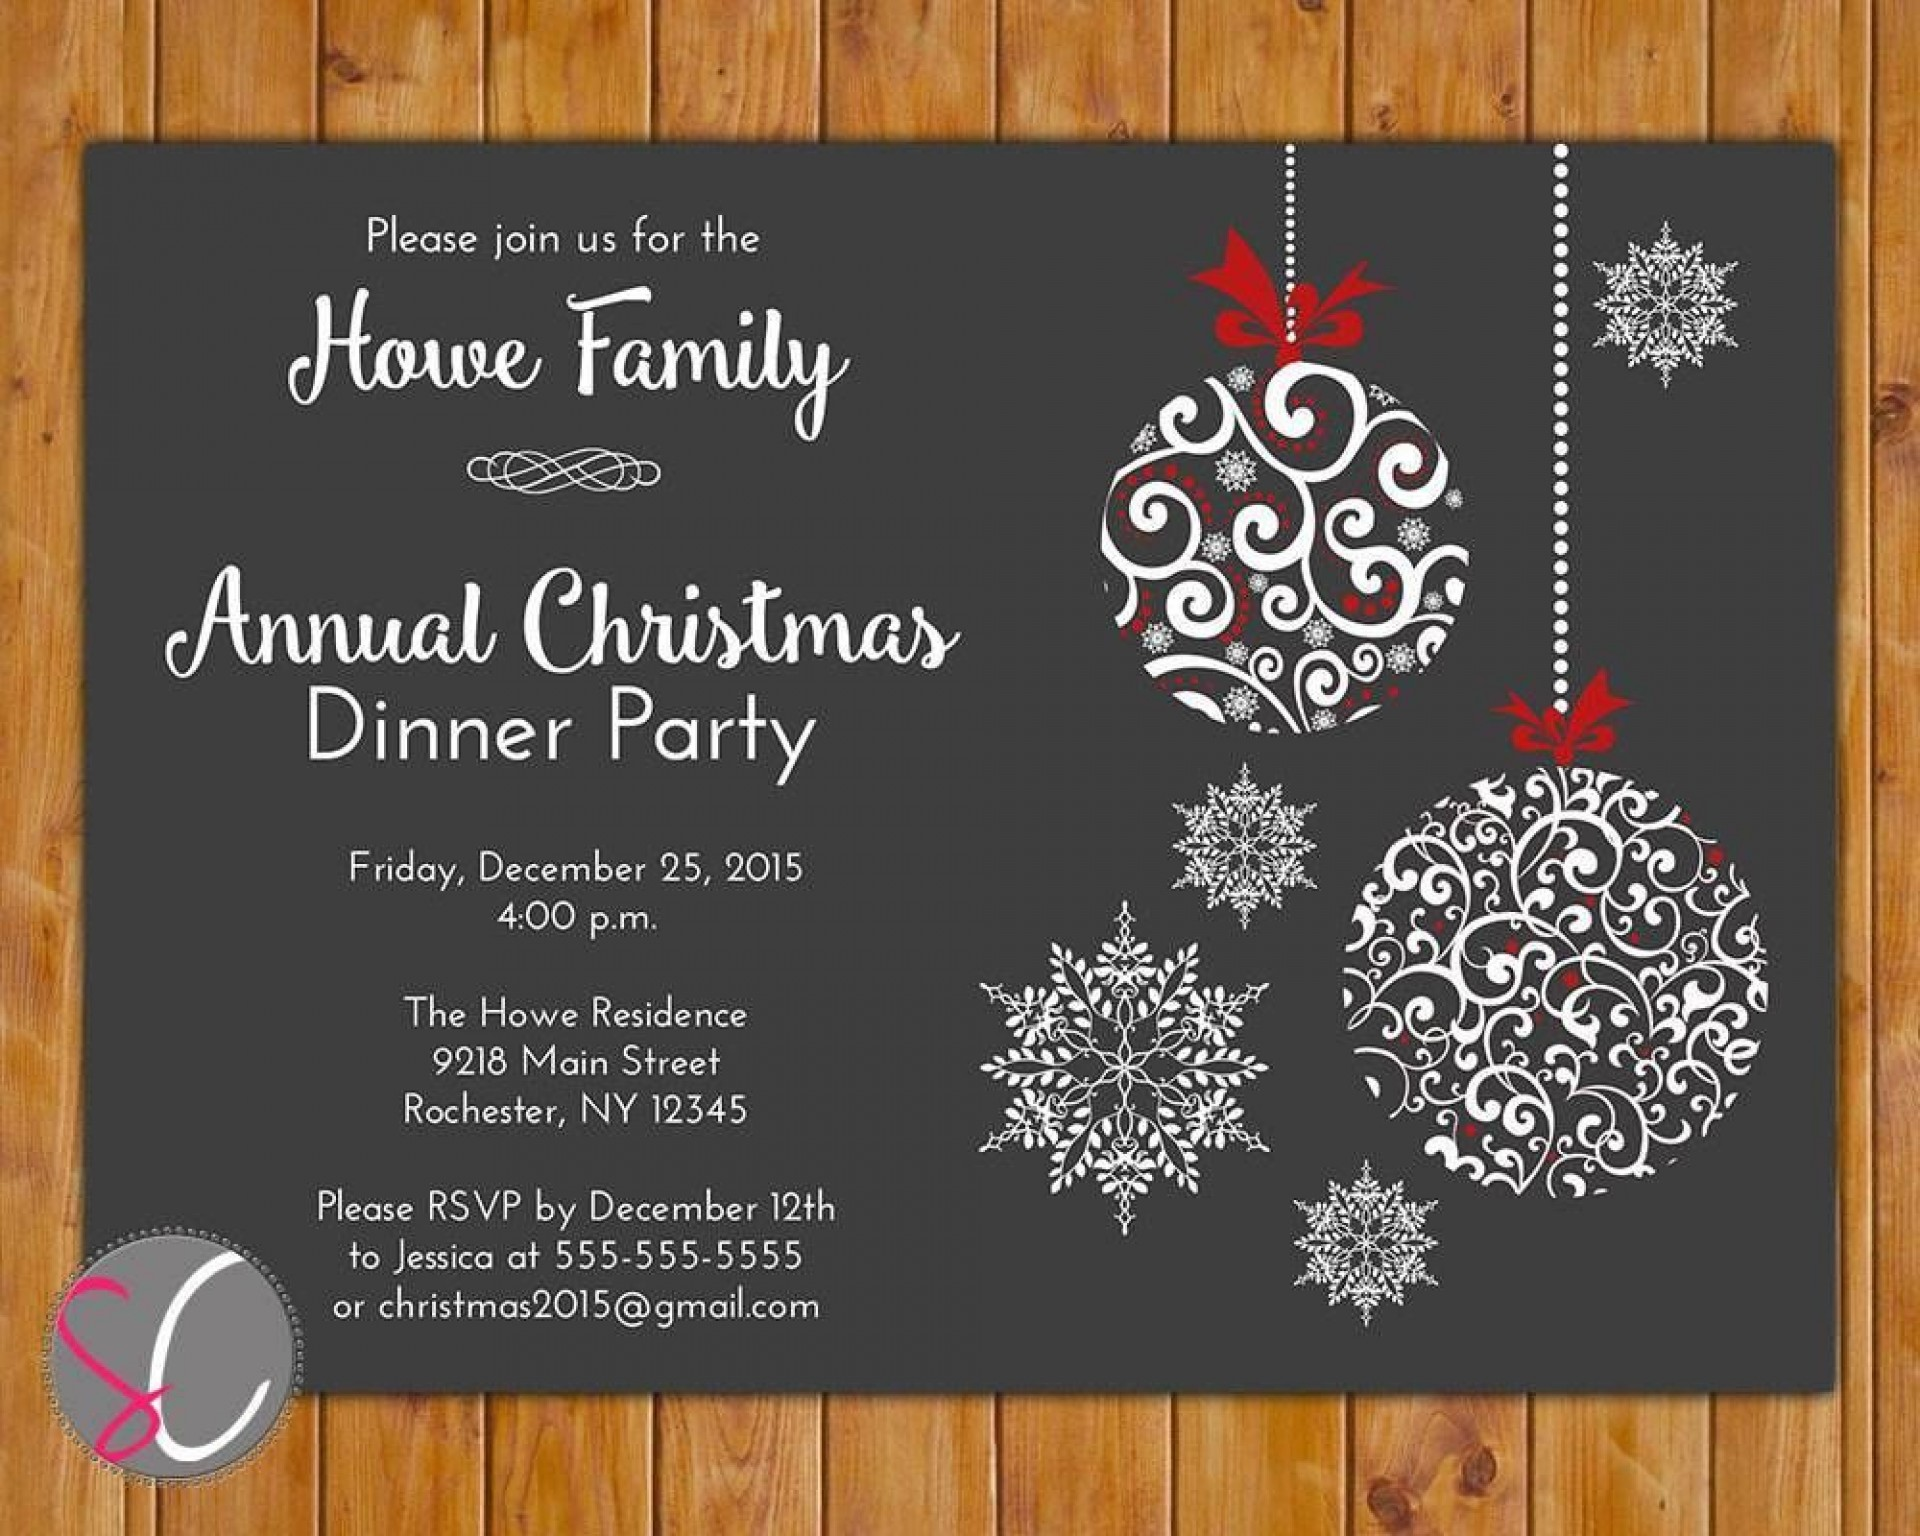 003 Staggering Free Holiday Invitation Template High Def  Online Party Christma1920